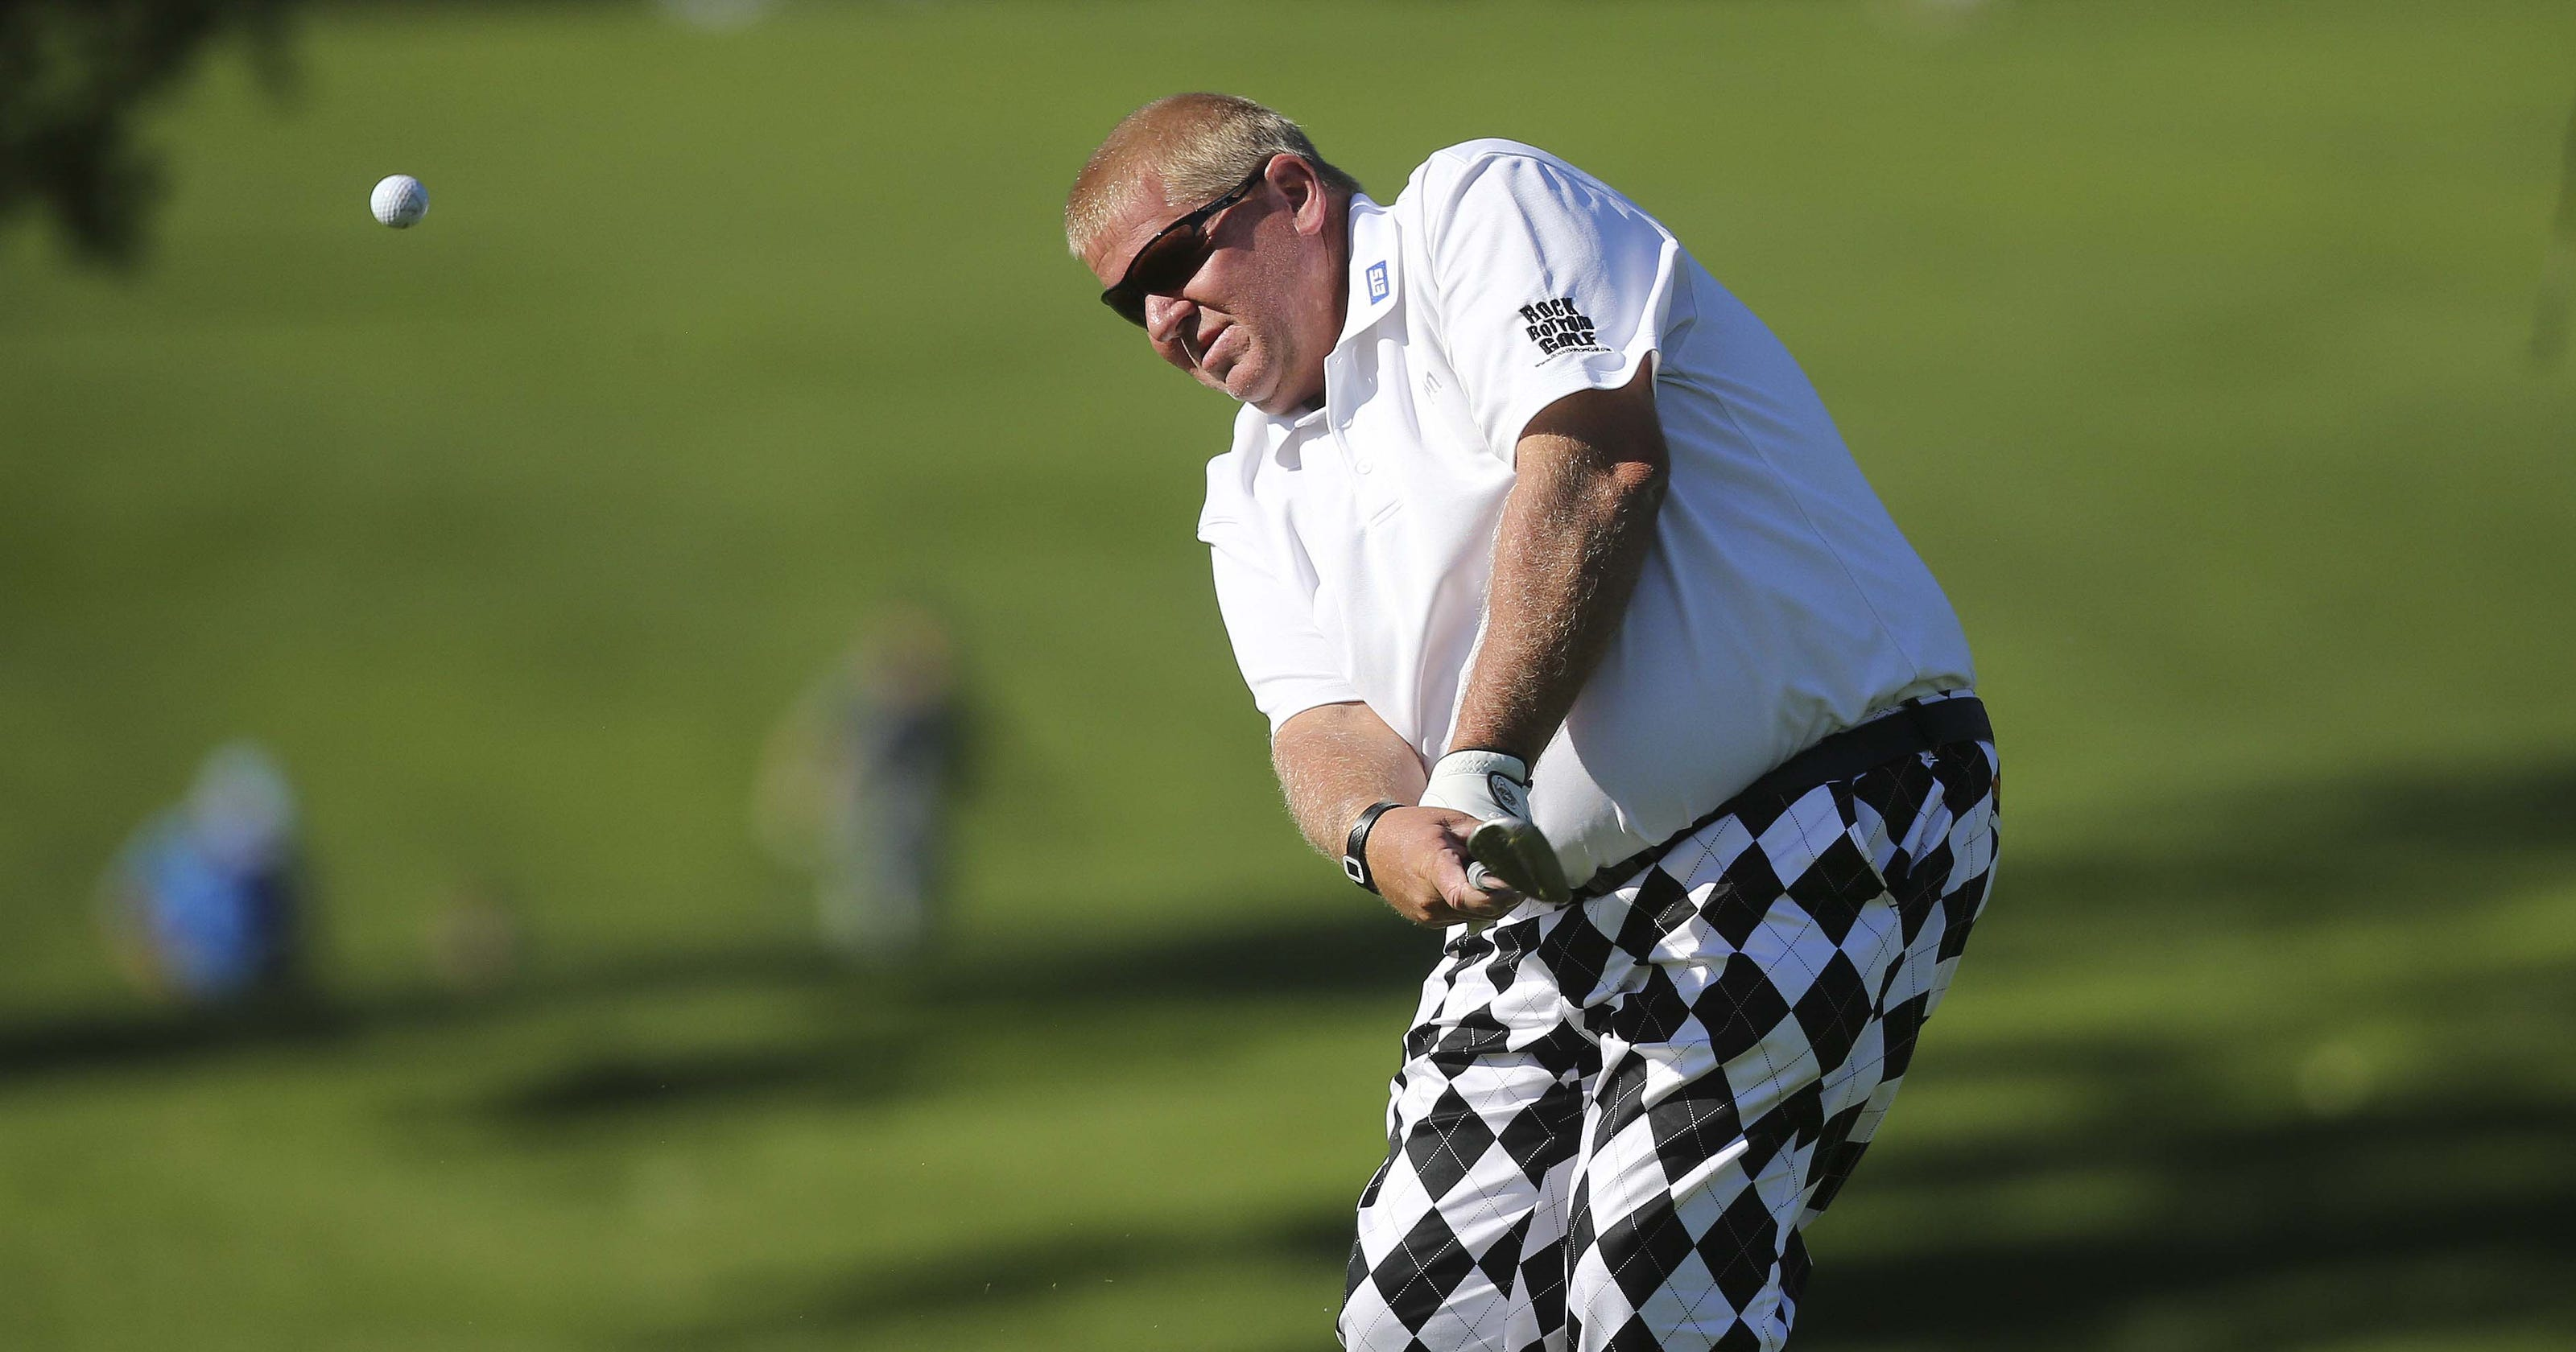 ZJFC Takeaways: John Daly upholds fan favorite status